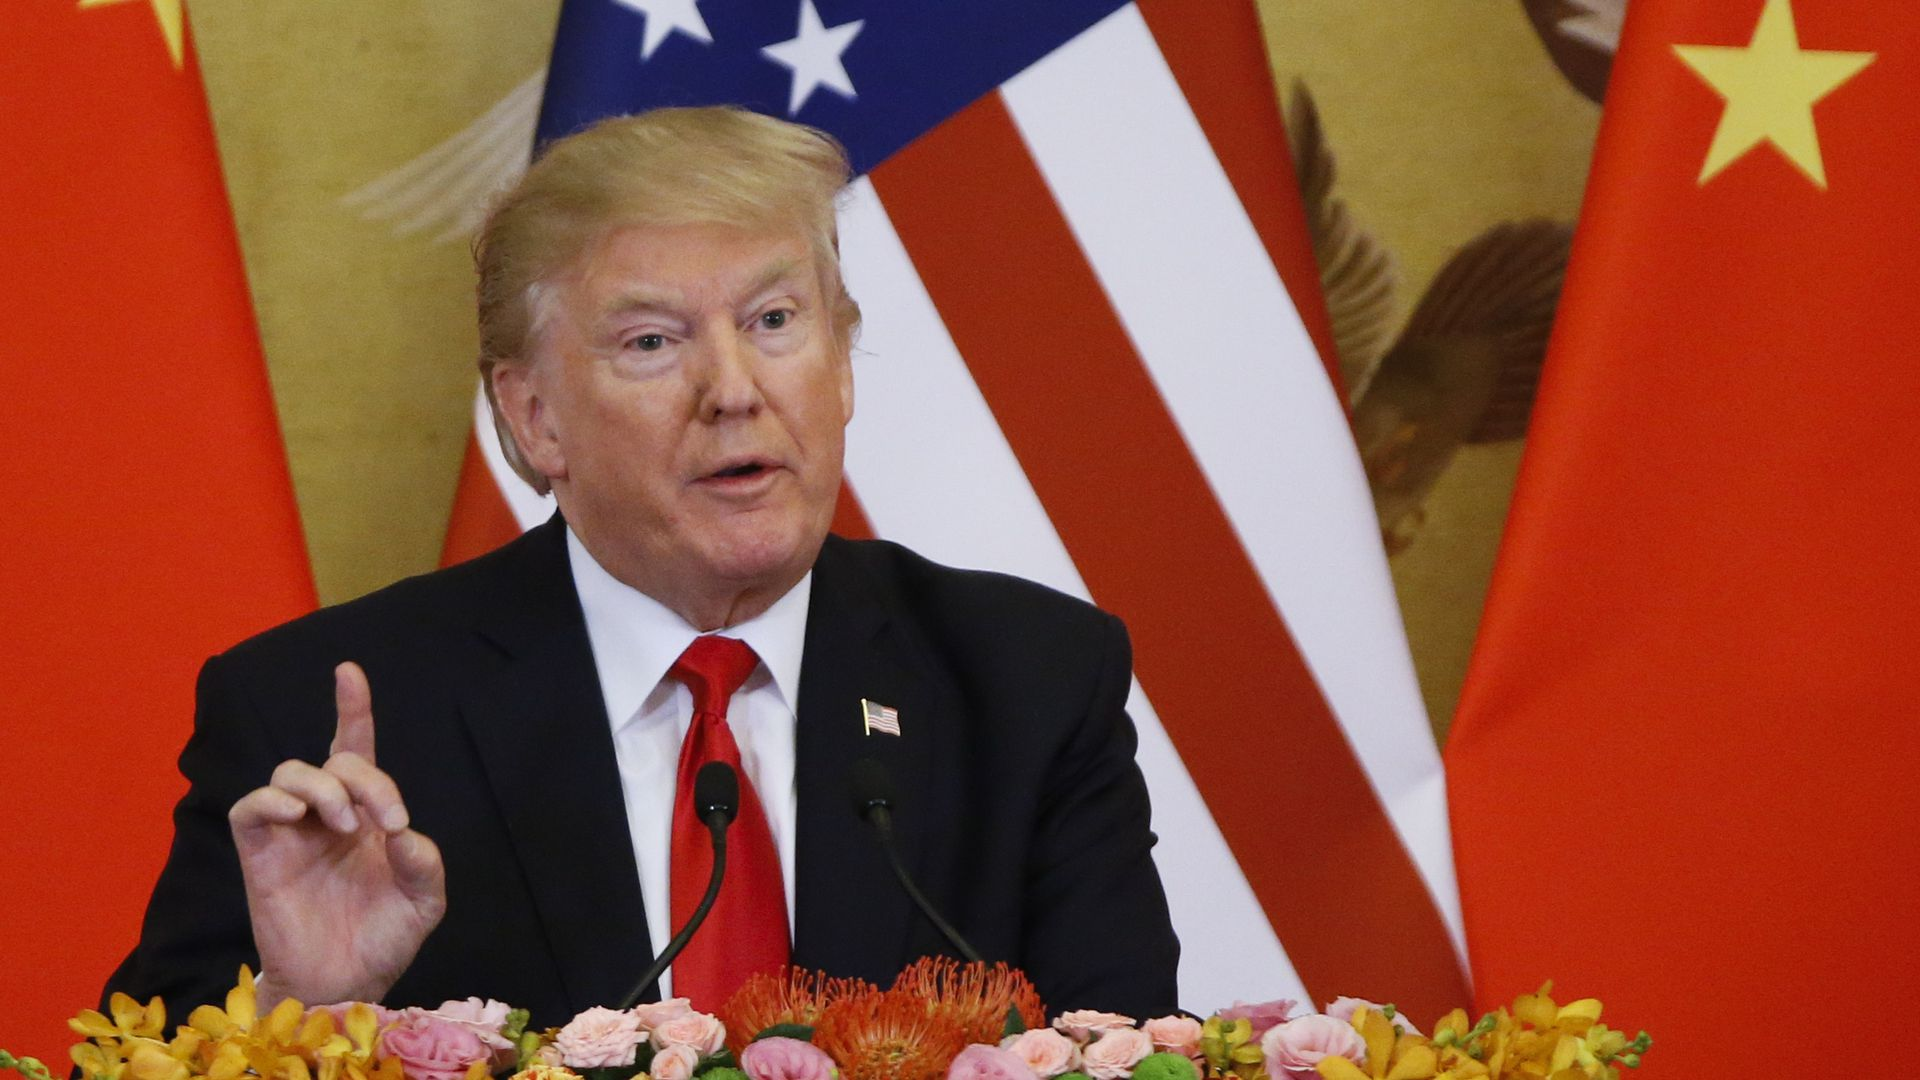 President Donald Trump and China's President Xi Jinping (not shown) make a joint statement at the Great Hall of the People on November 9, 2017 in Beijing, China.